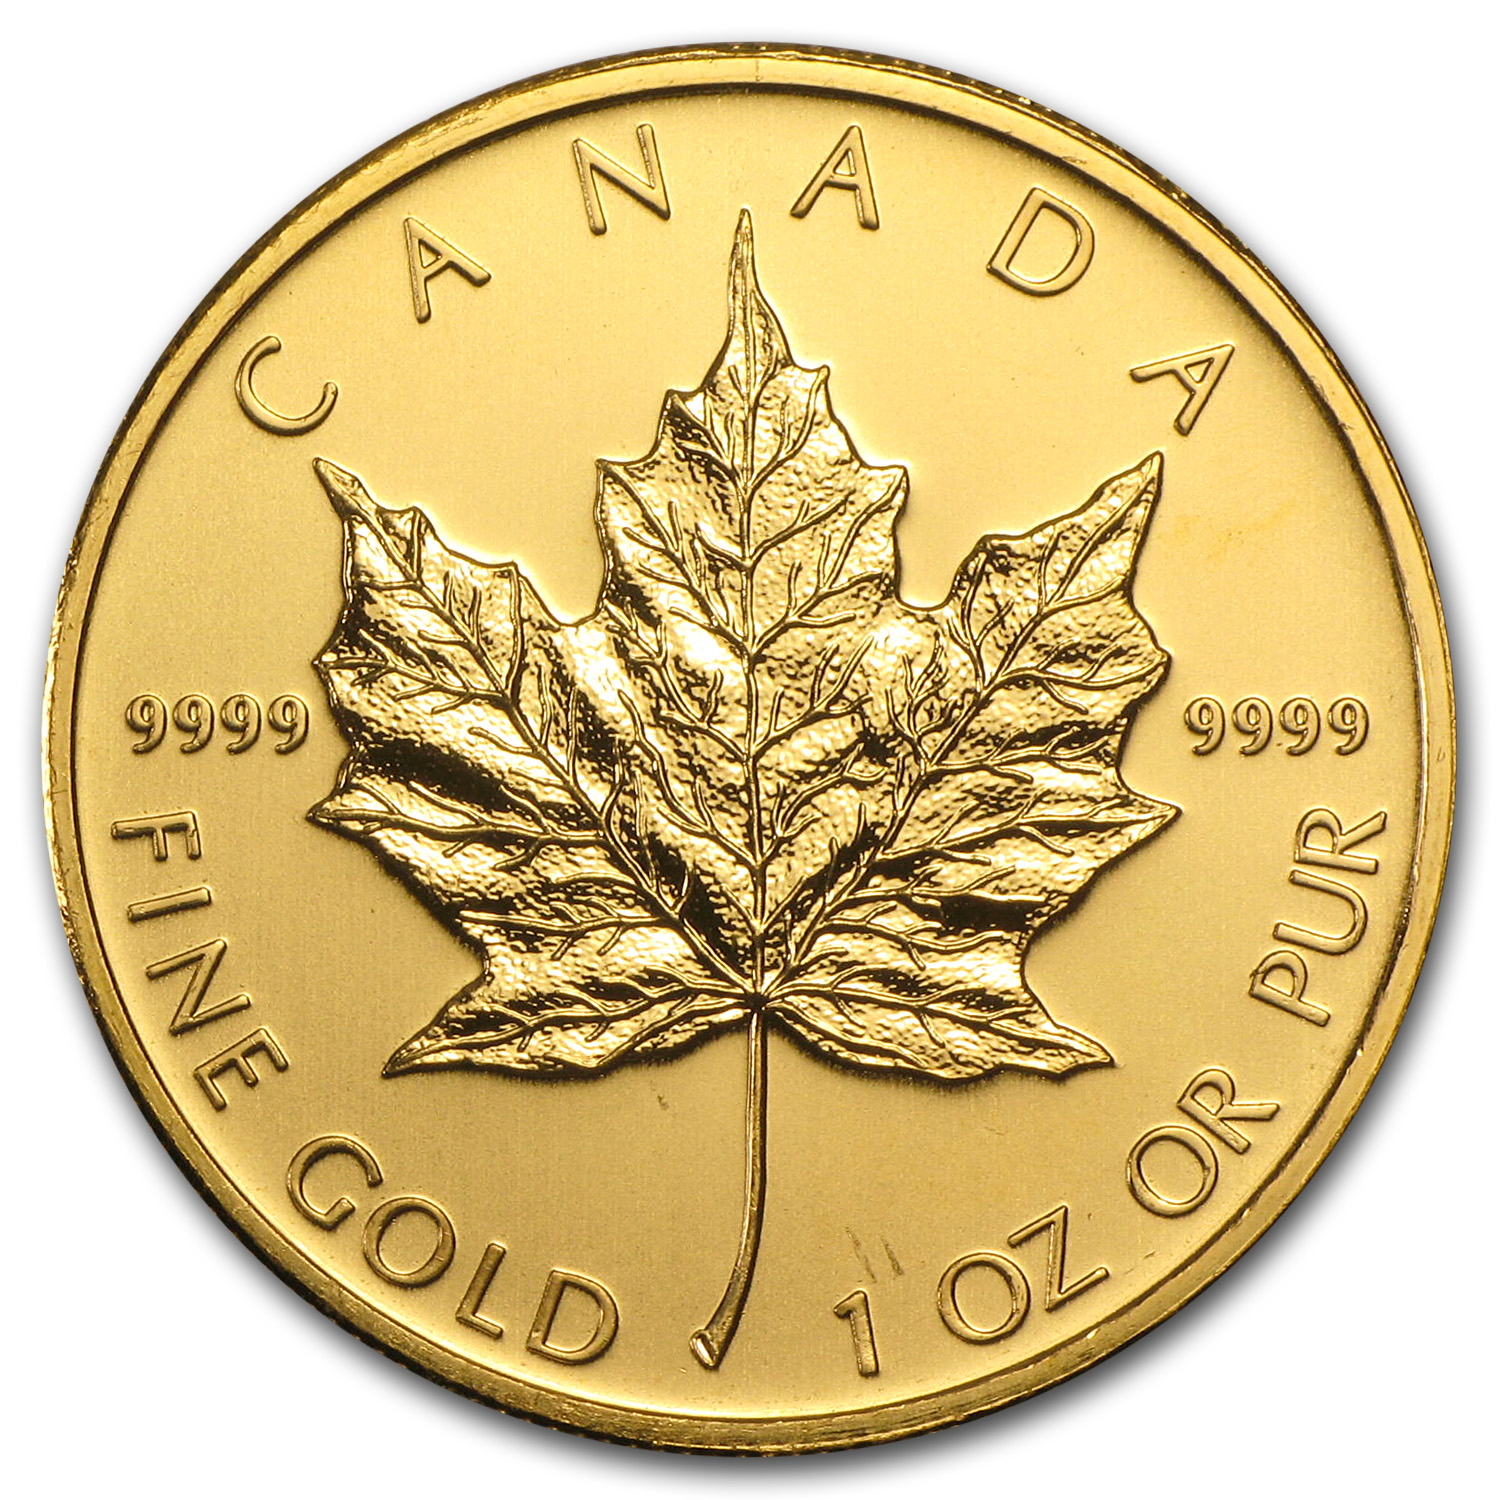 2009 Canada 1 oz Gold Maple Leaf BU